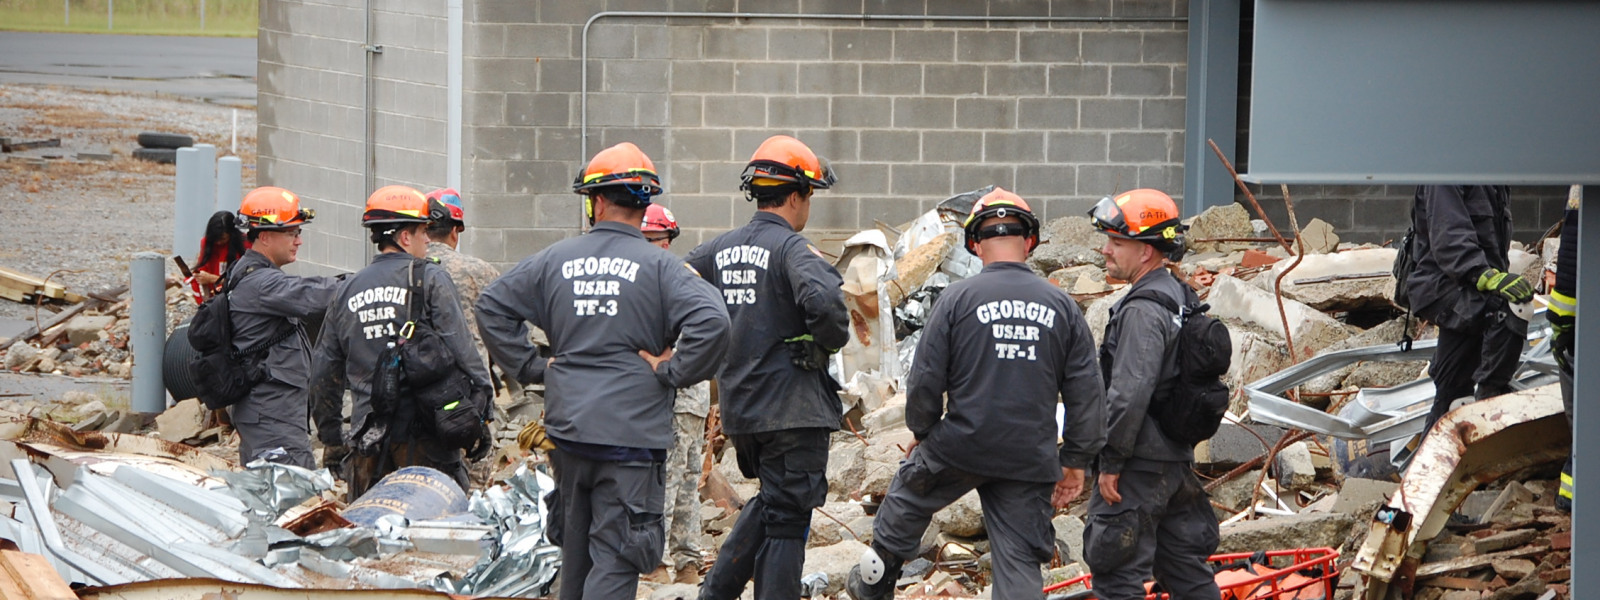 Earthquake Response - USAR Task Force